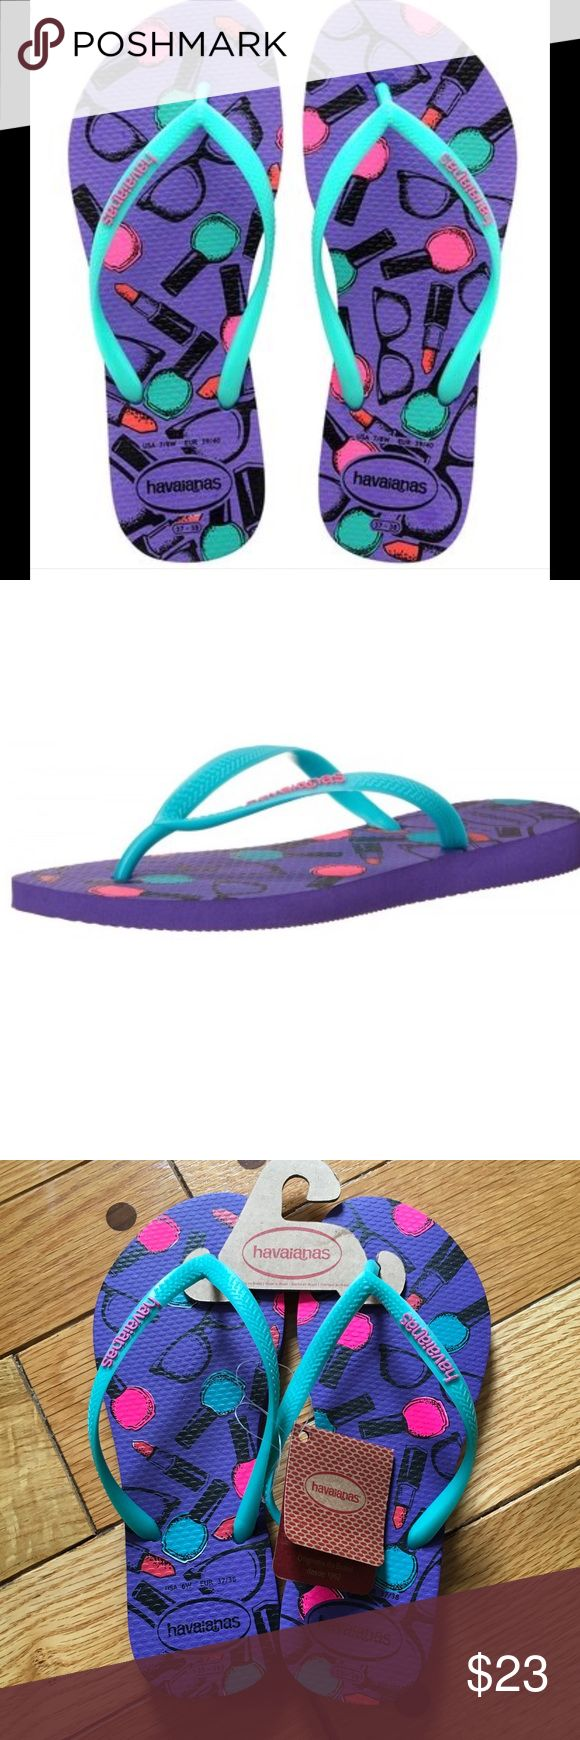 """Havaianas Slim Cool Purple Flip Flops NWT, Thong style flip flops. Cushioned footbed with textured rice pattern and rubber flip flop sole. Theme is nail polish & lipstick. Size says """"USA 6W"""" and """"EUR 37/38"""". Made in Brazil. Havaianas Shoes Sandals"""